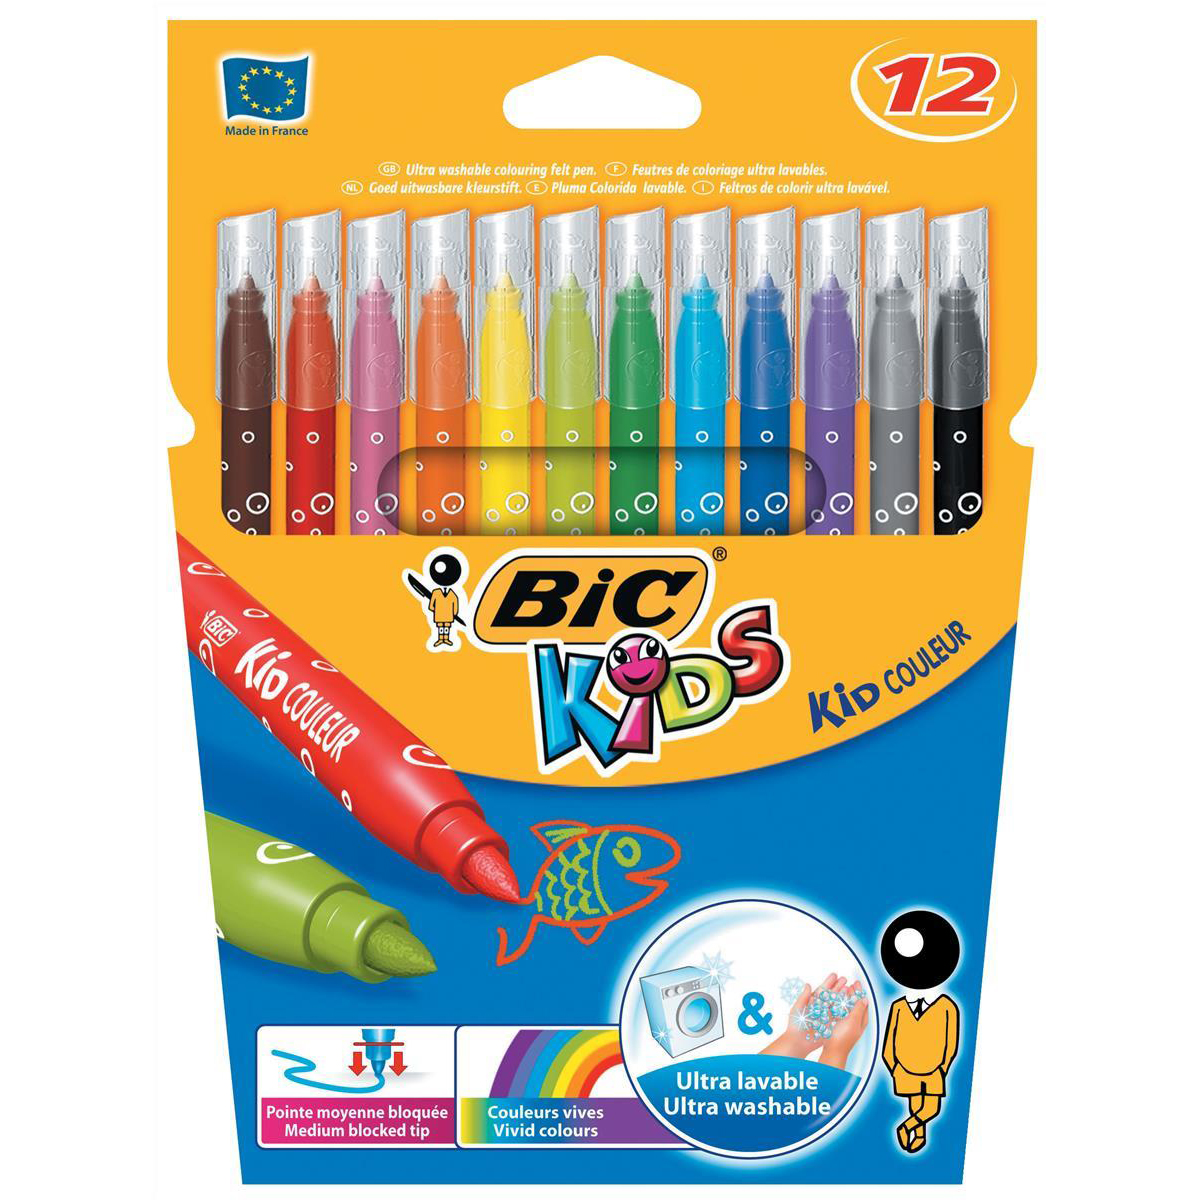 Colouring Pens Bic Kids Couleur Felt Tip Pens Washable Water-based Ink Medium Tip Wallet Asstd Cols Ref 920293 [Pack 12]